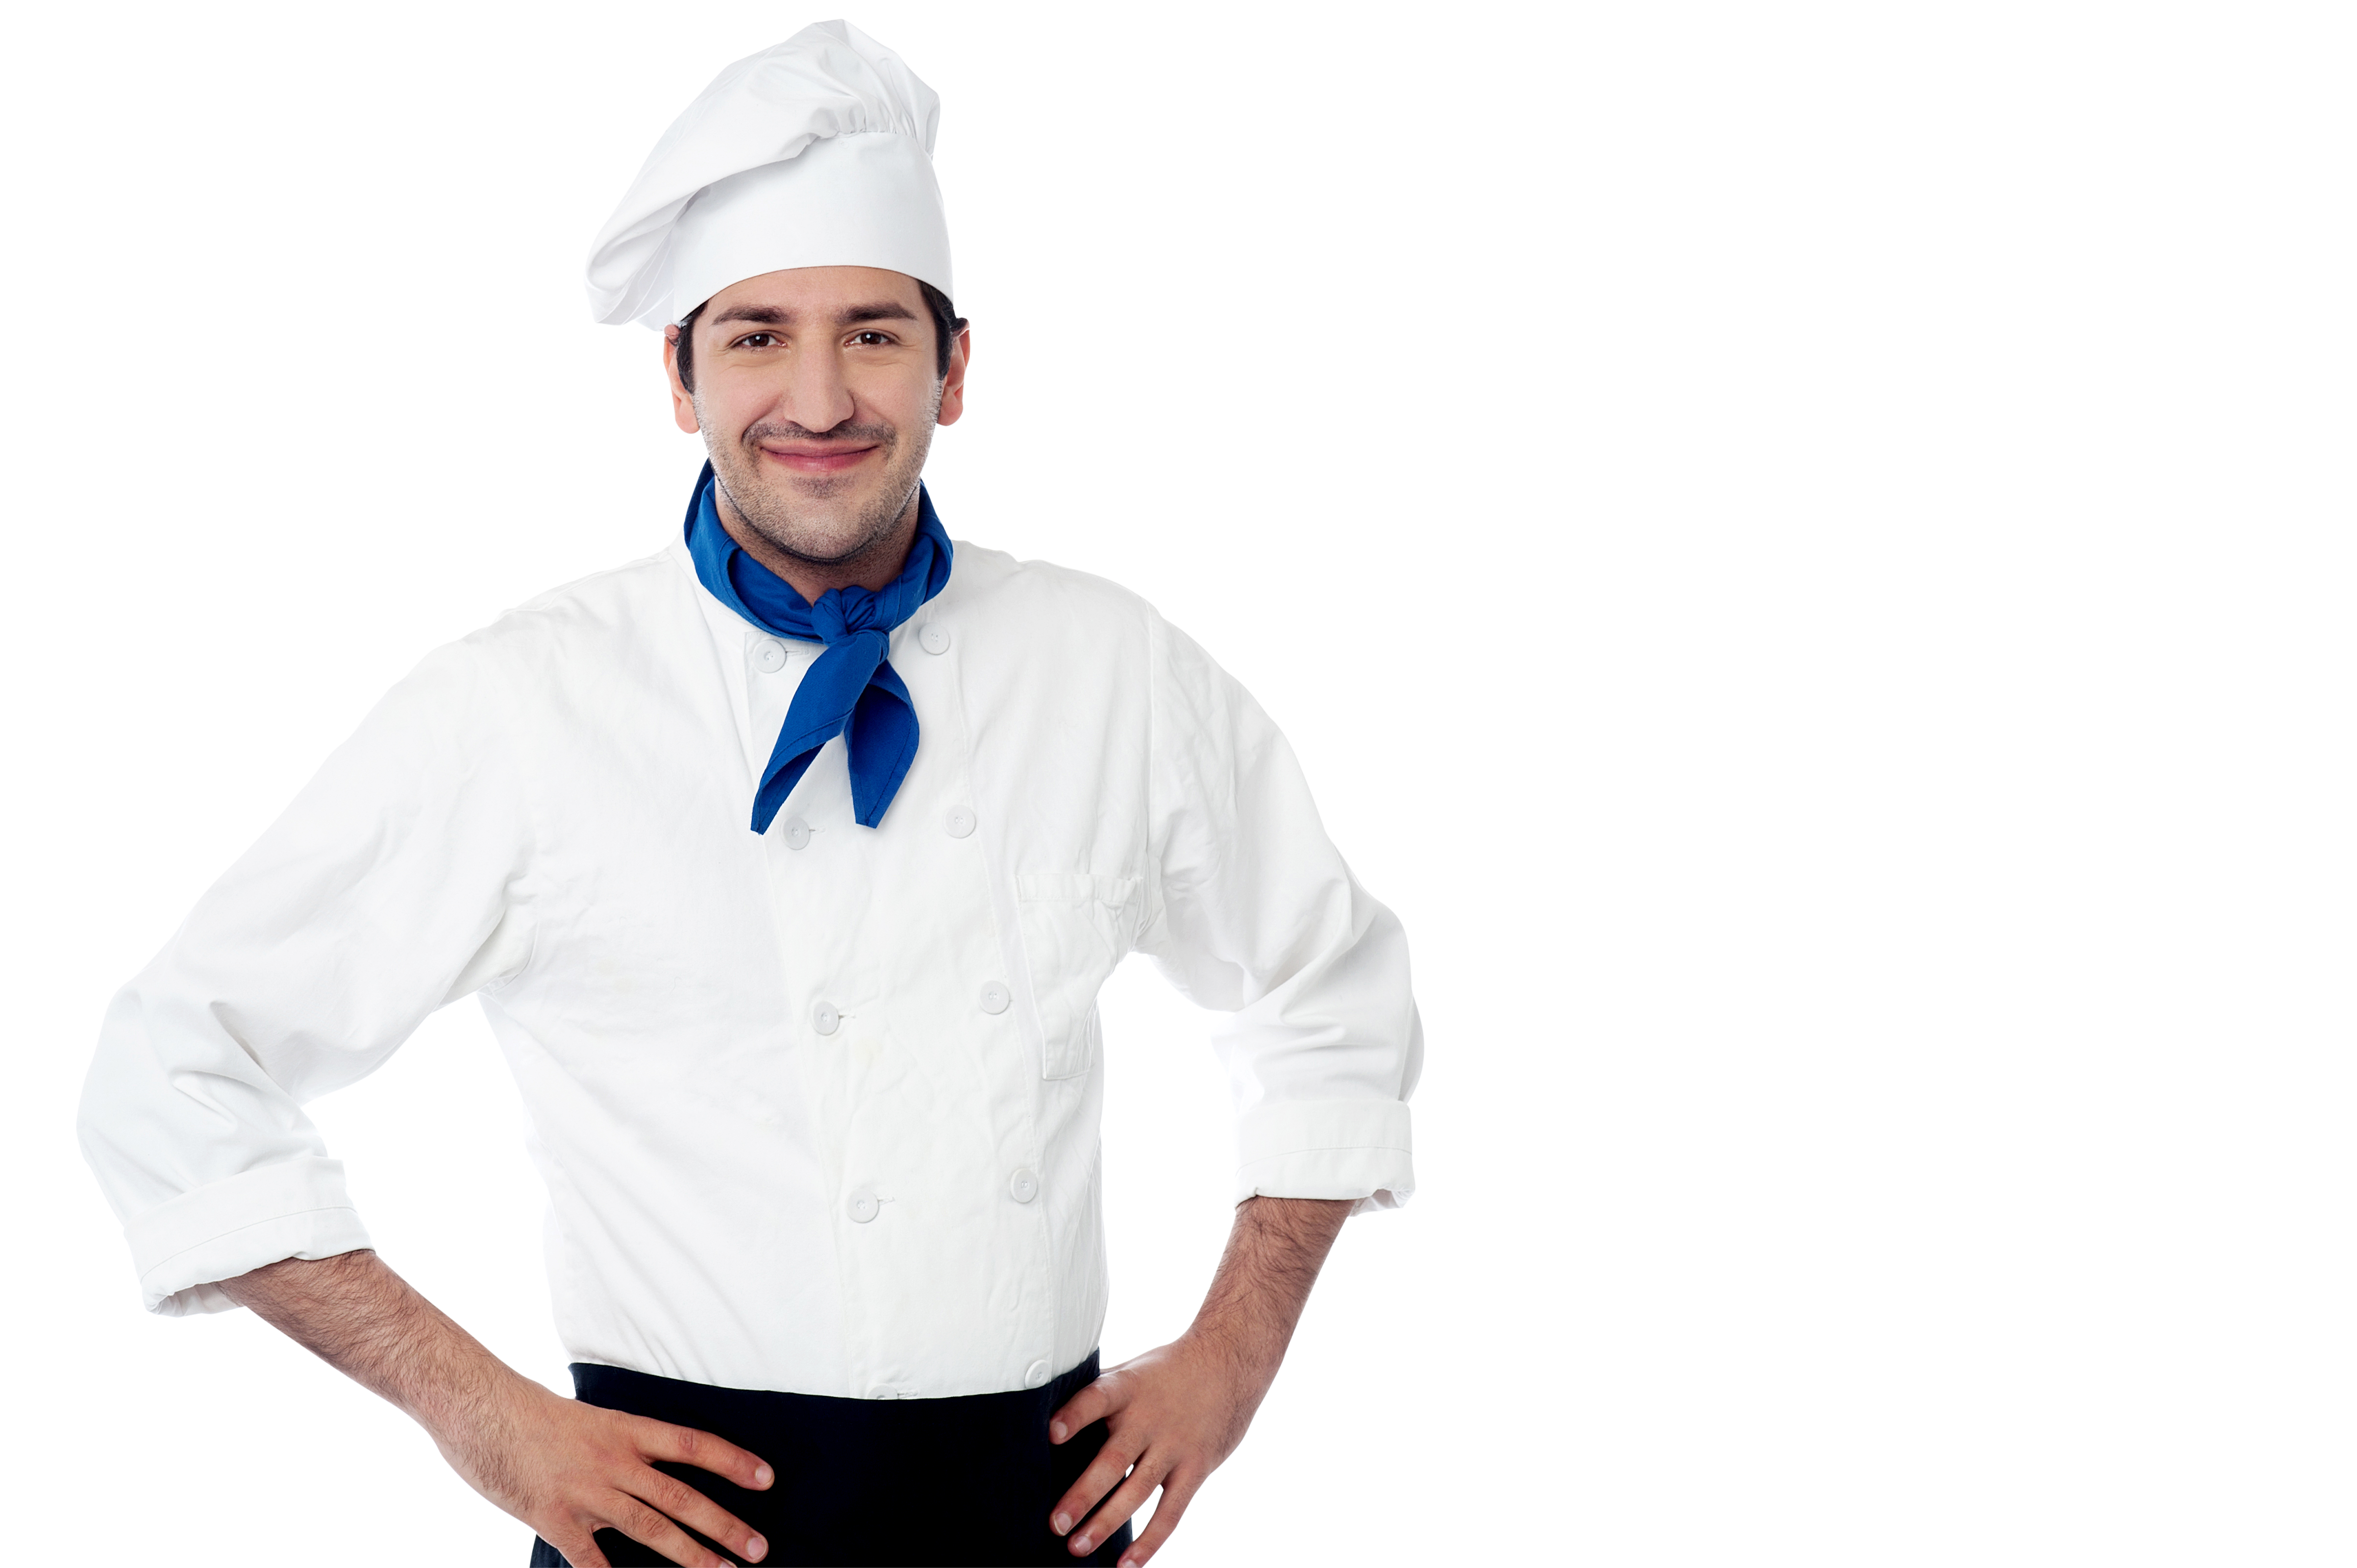 chef png image purepng transparent png image #14467